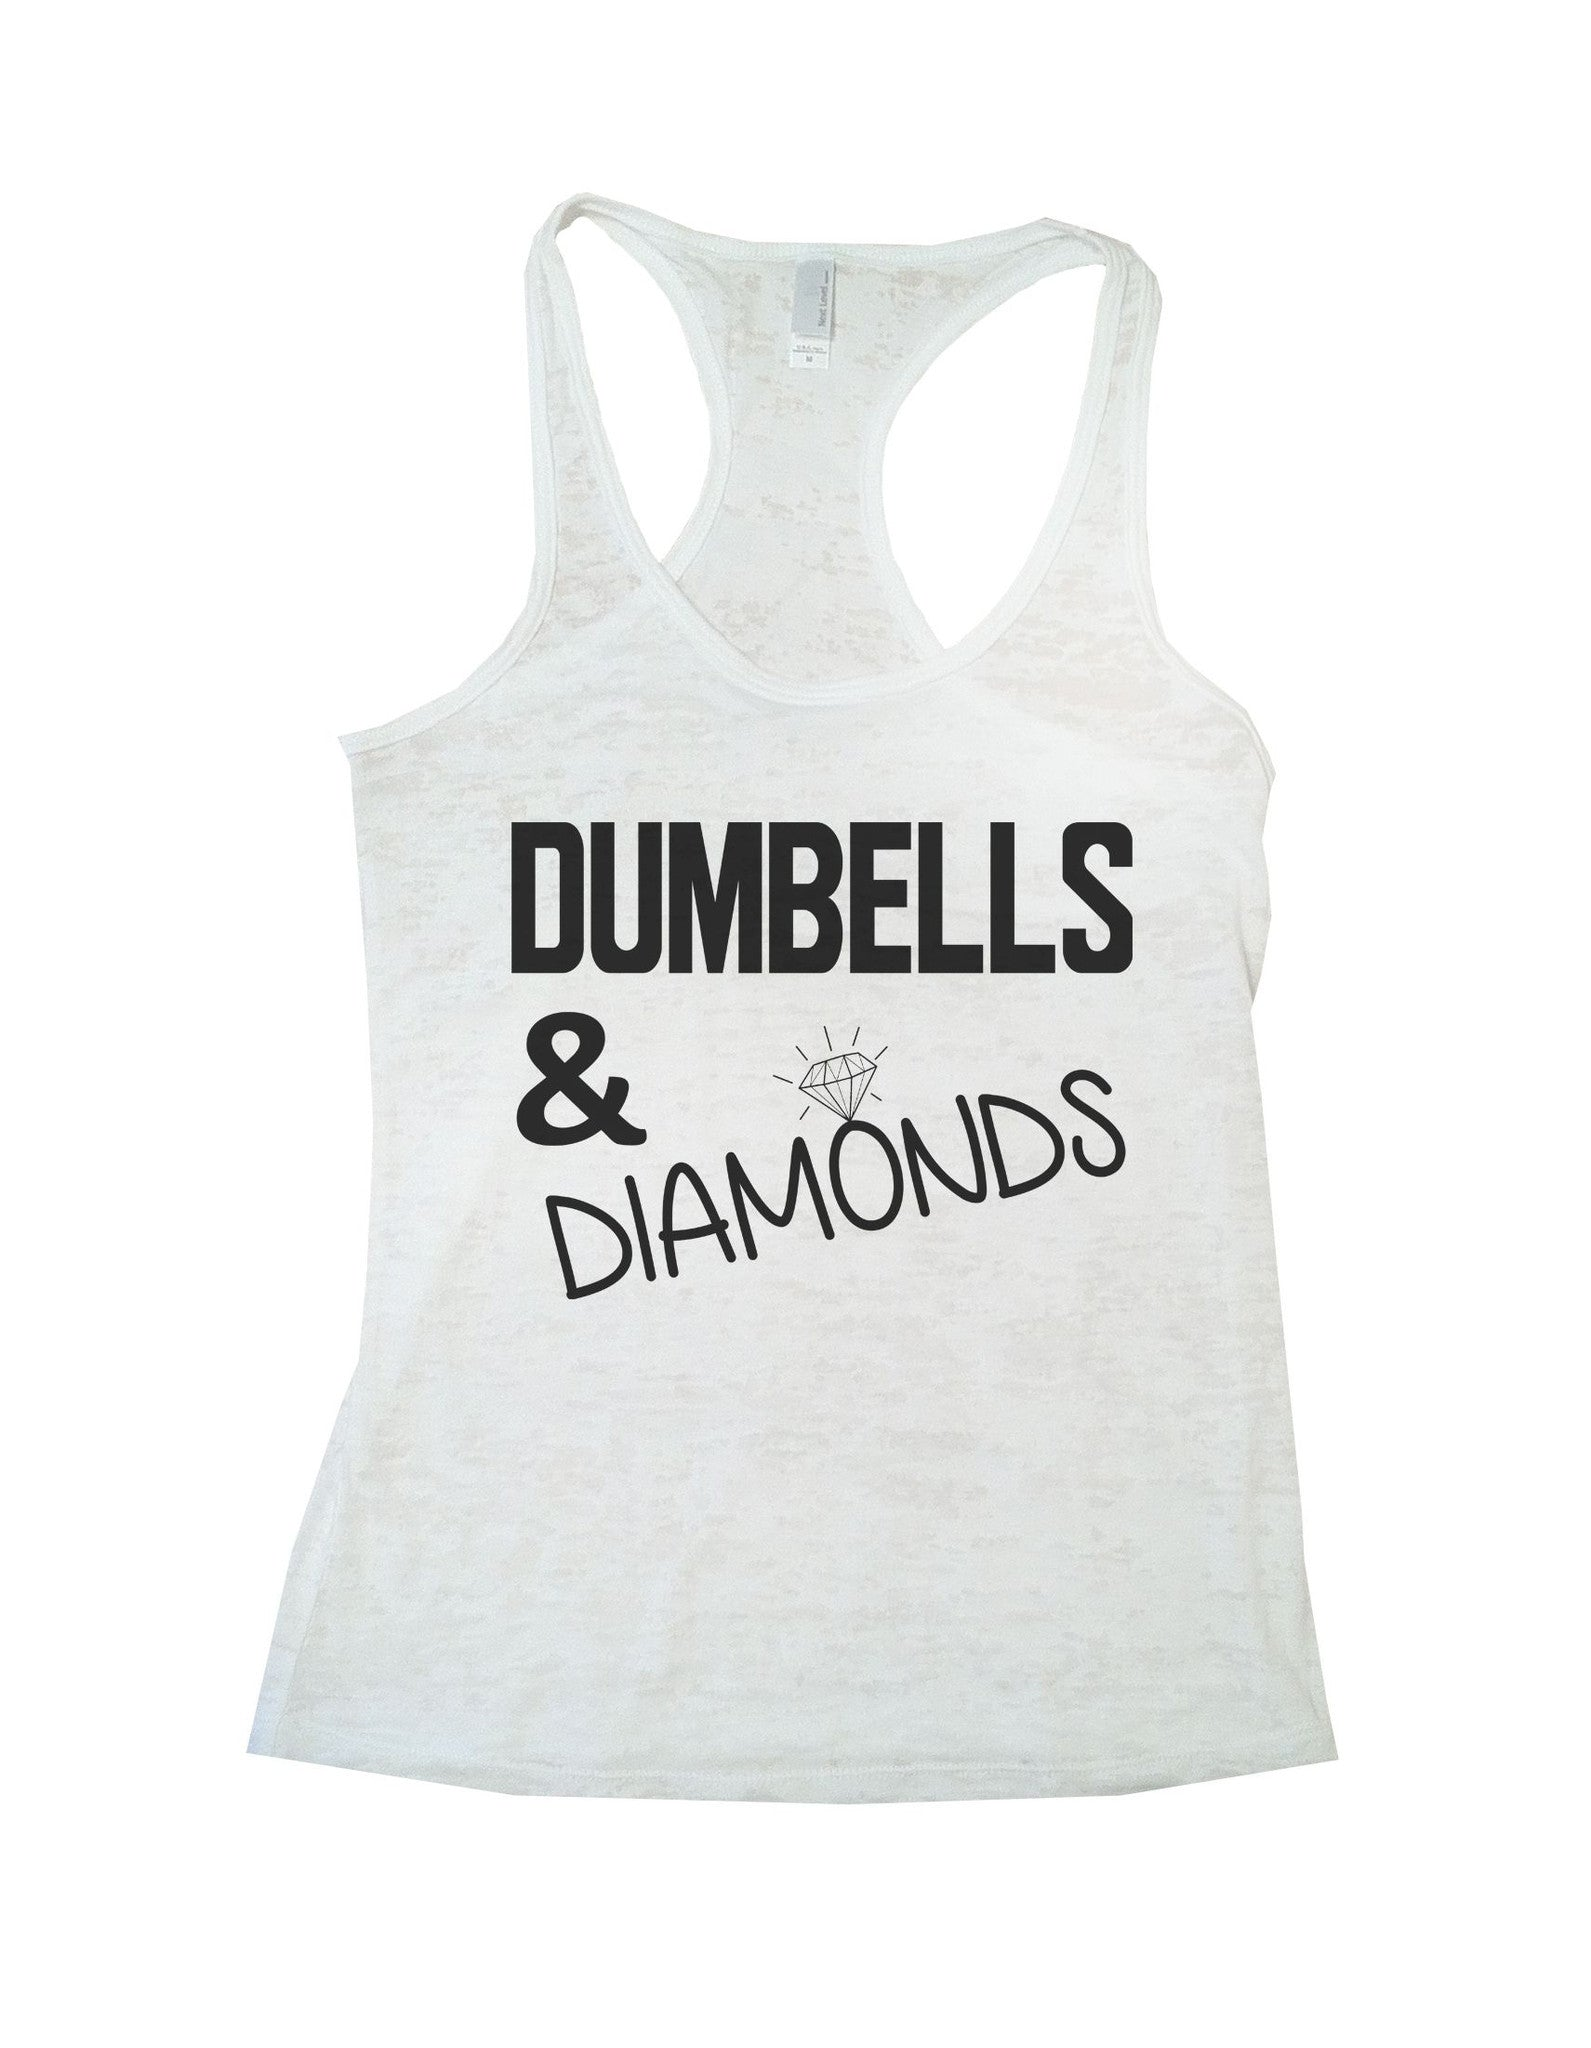 Dumbells & Diamonds Burnout Tank Top By BurnoutTankTops.com - 692 - Funny Shirts Tank Tops Burnouts and Triblends  - 3